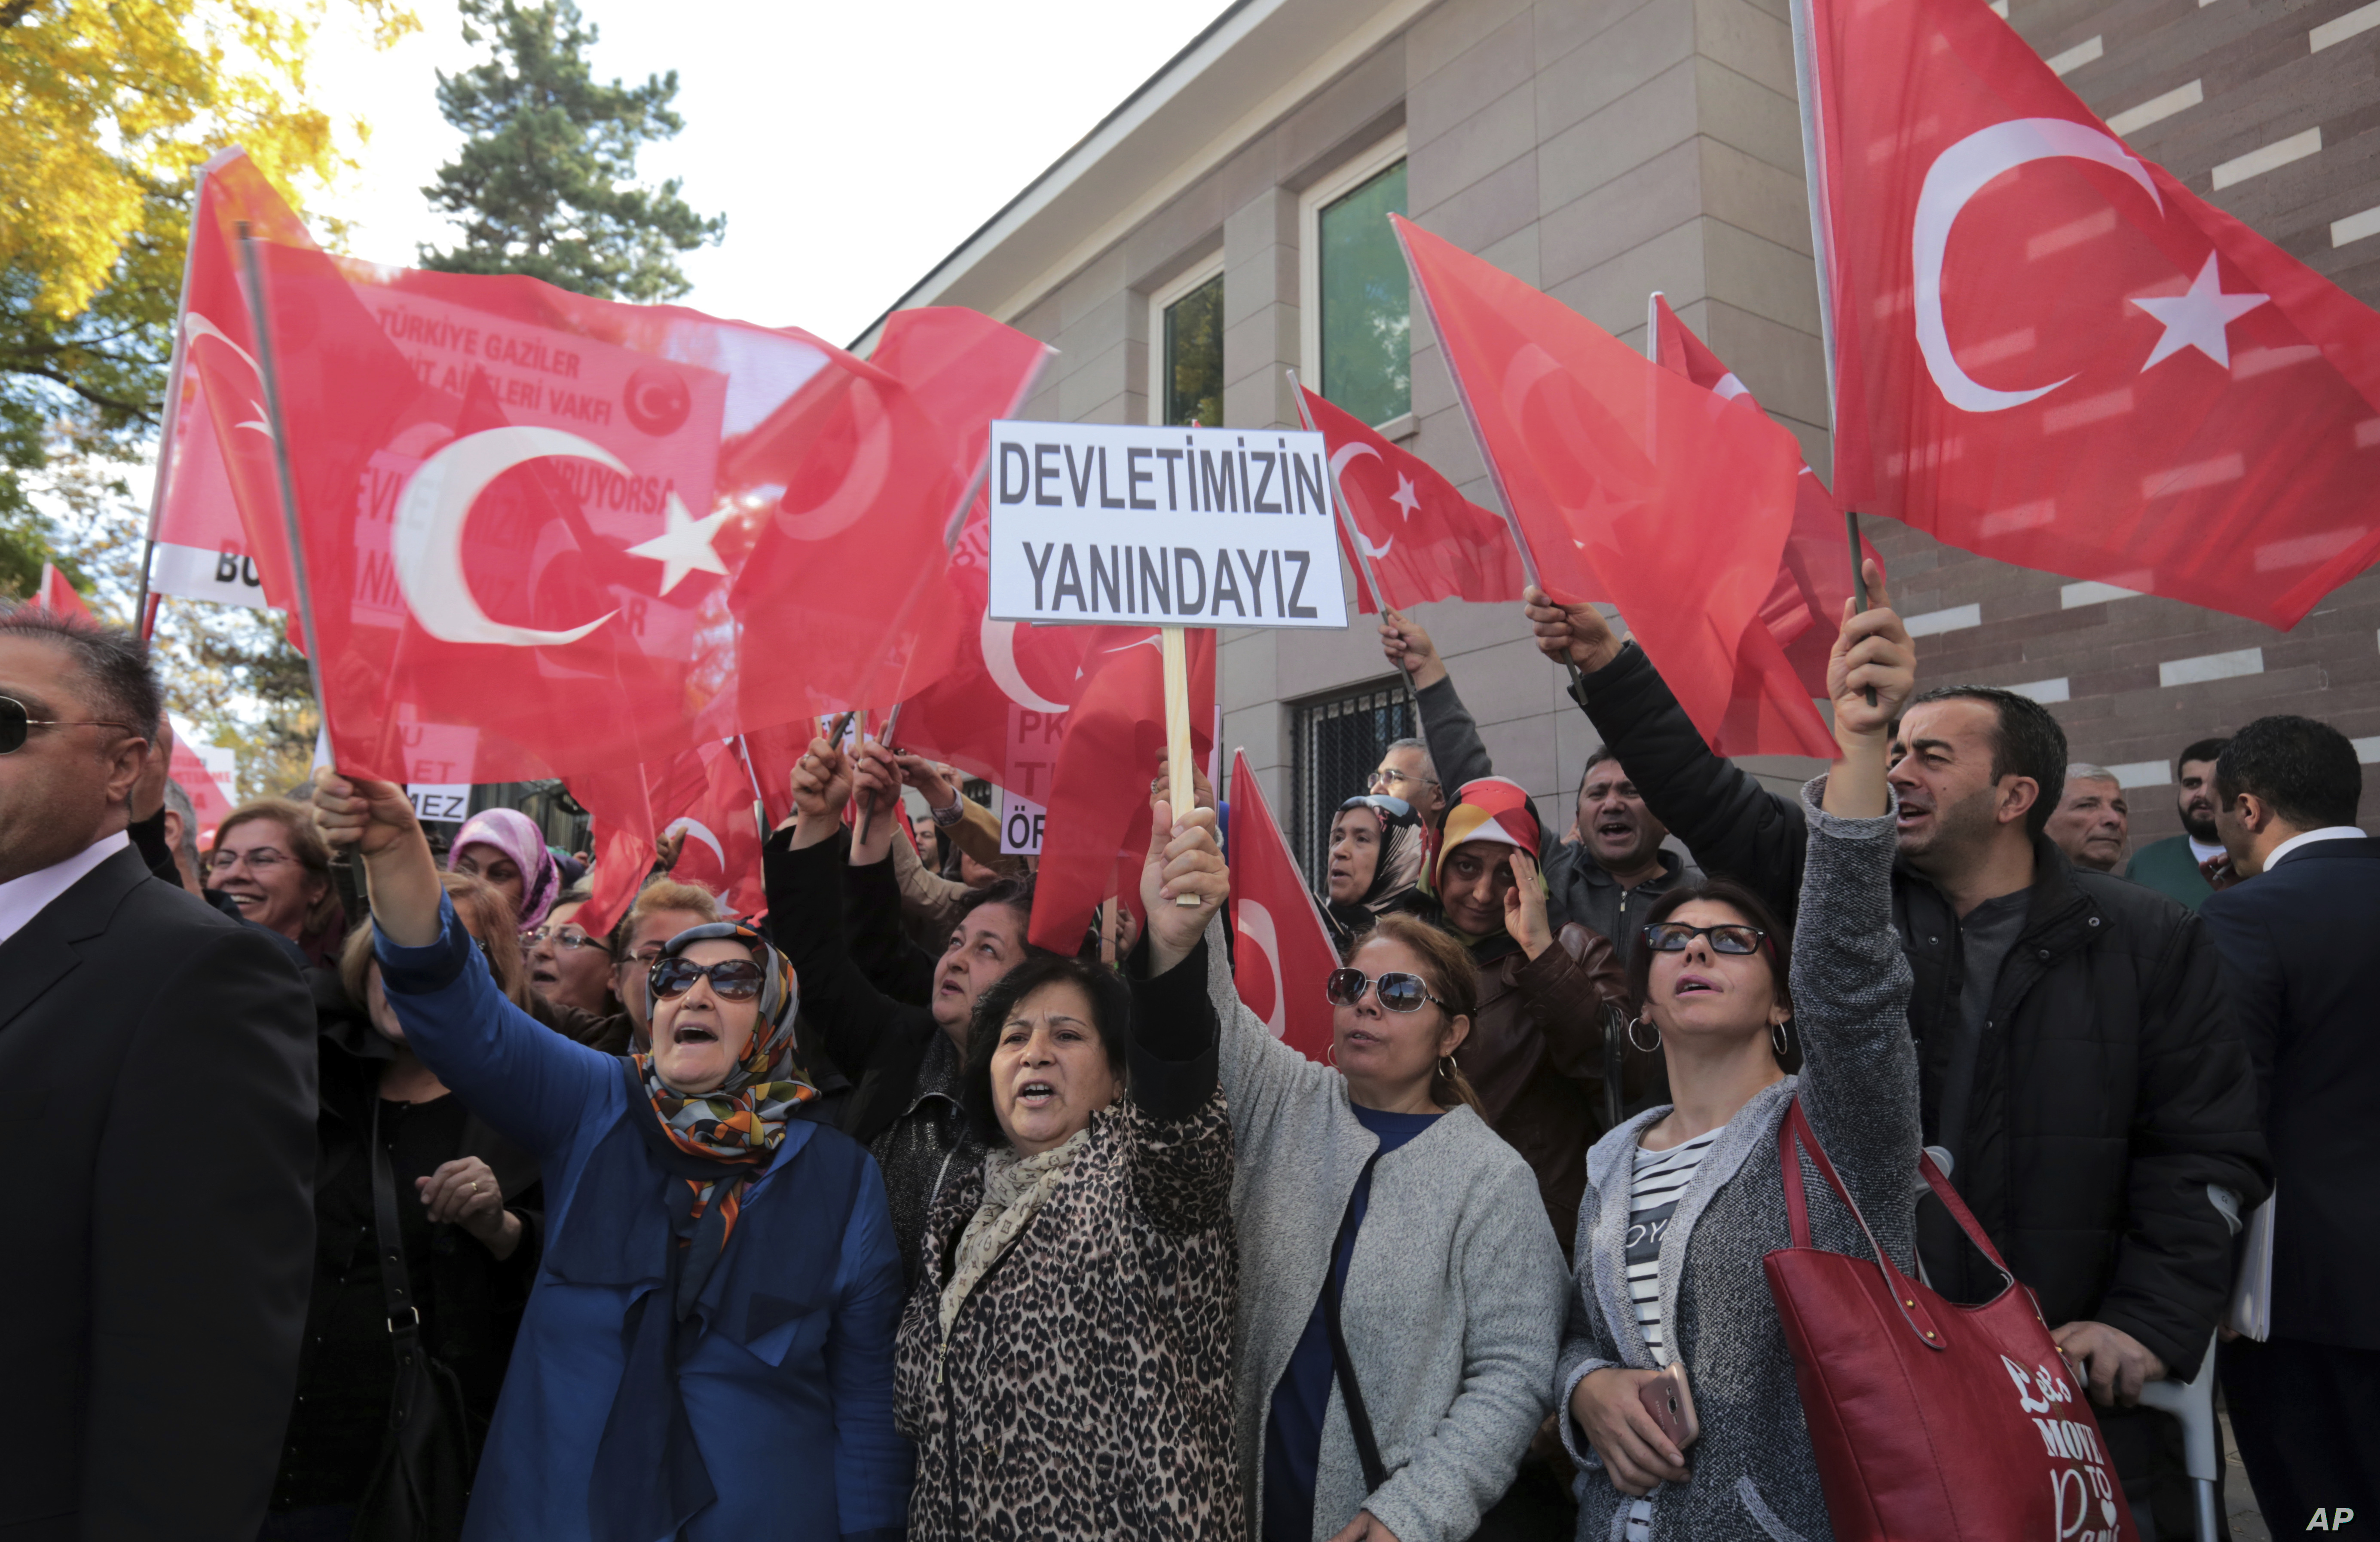 About 150 members of Turkey's ruling Justice and Development Party stage a protest outside the French embassy, accusing France of supporting terrorism, in Ankara, Turkey, Nov. 11, 2016.